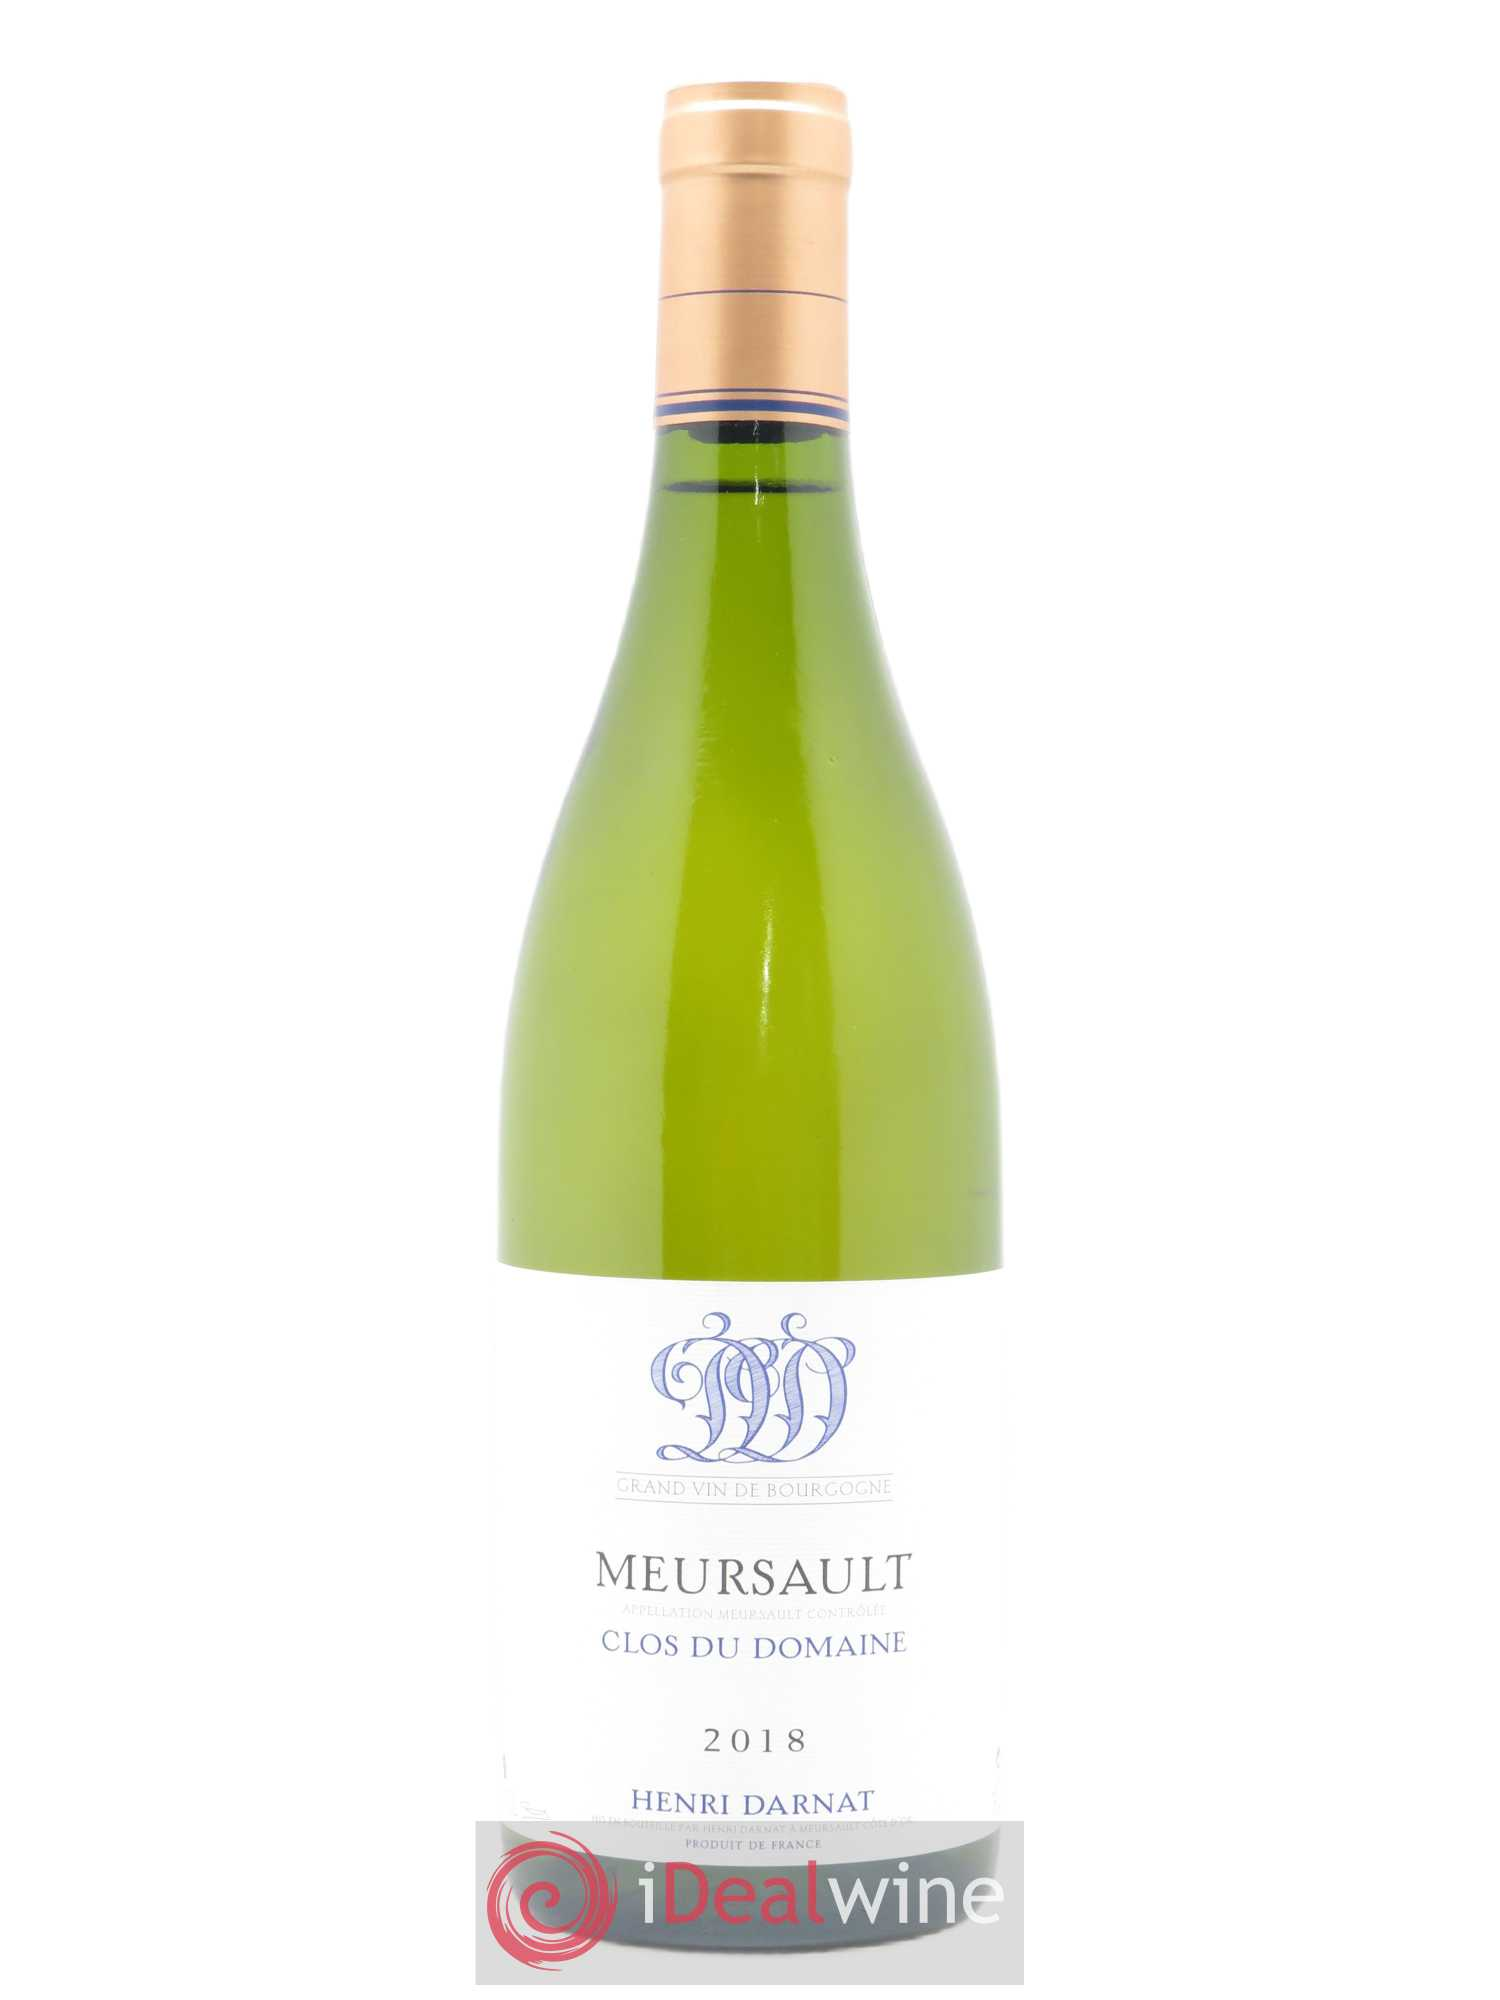 Meursault Clos du Domaine Henri Darnat  2018 - Lot of 1 Bottle